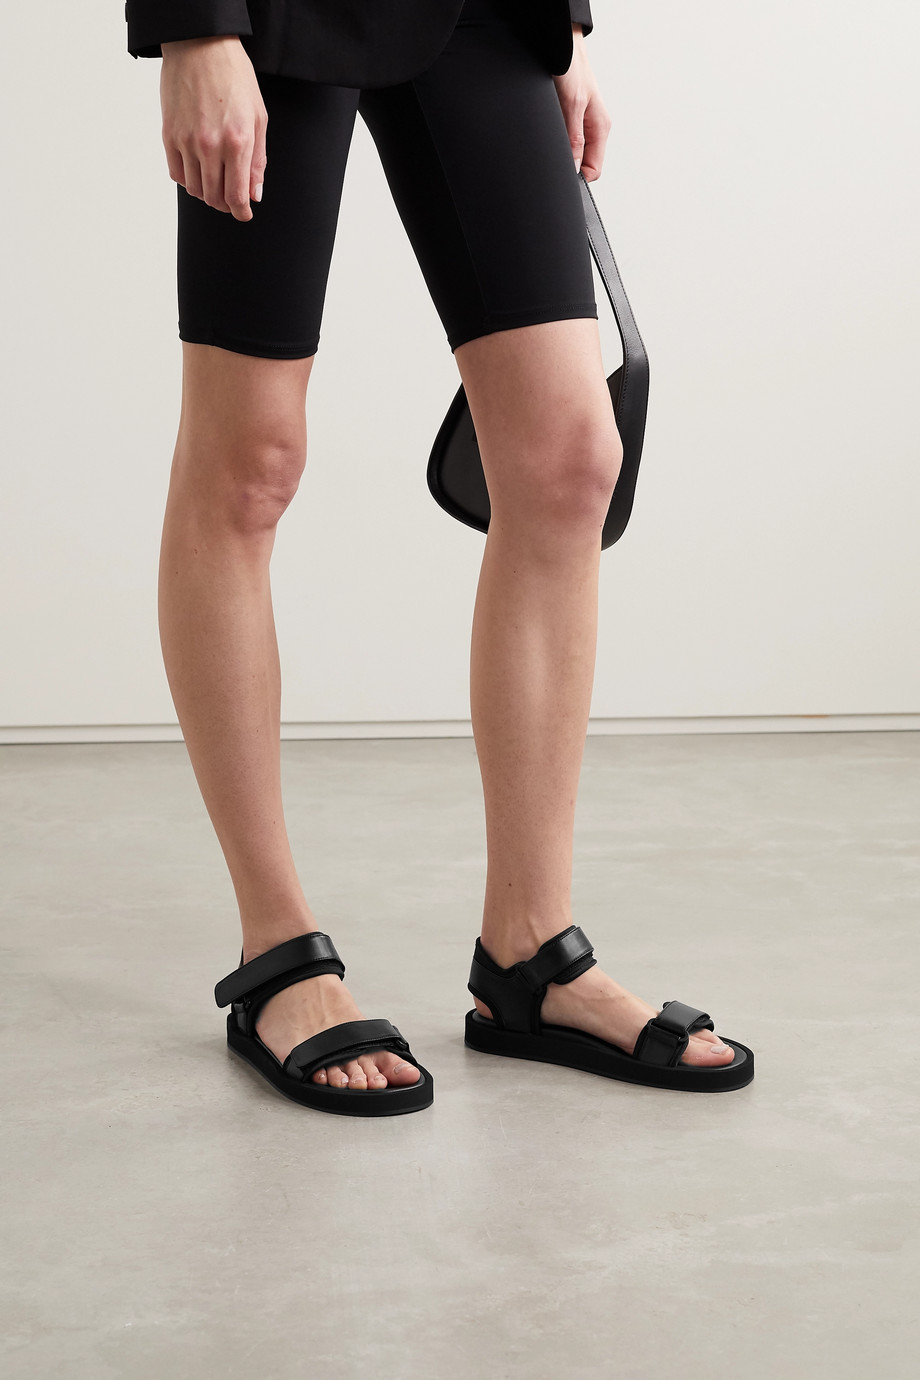 The Row Hook and Loop Sandalen aus Leder und Neopren